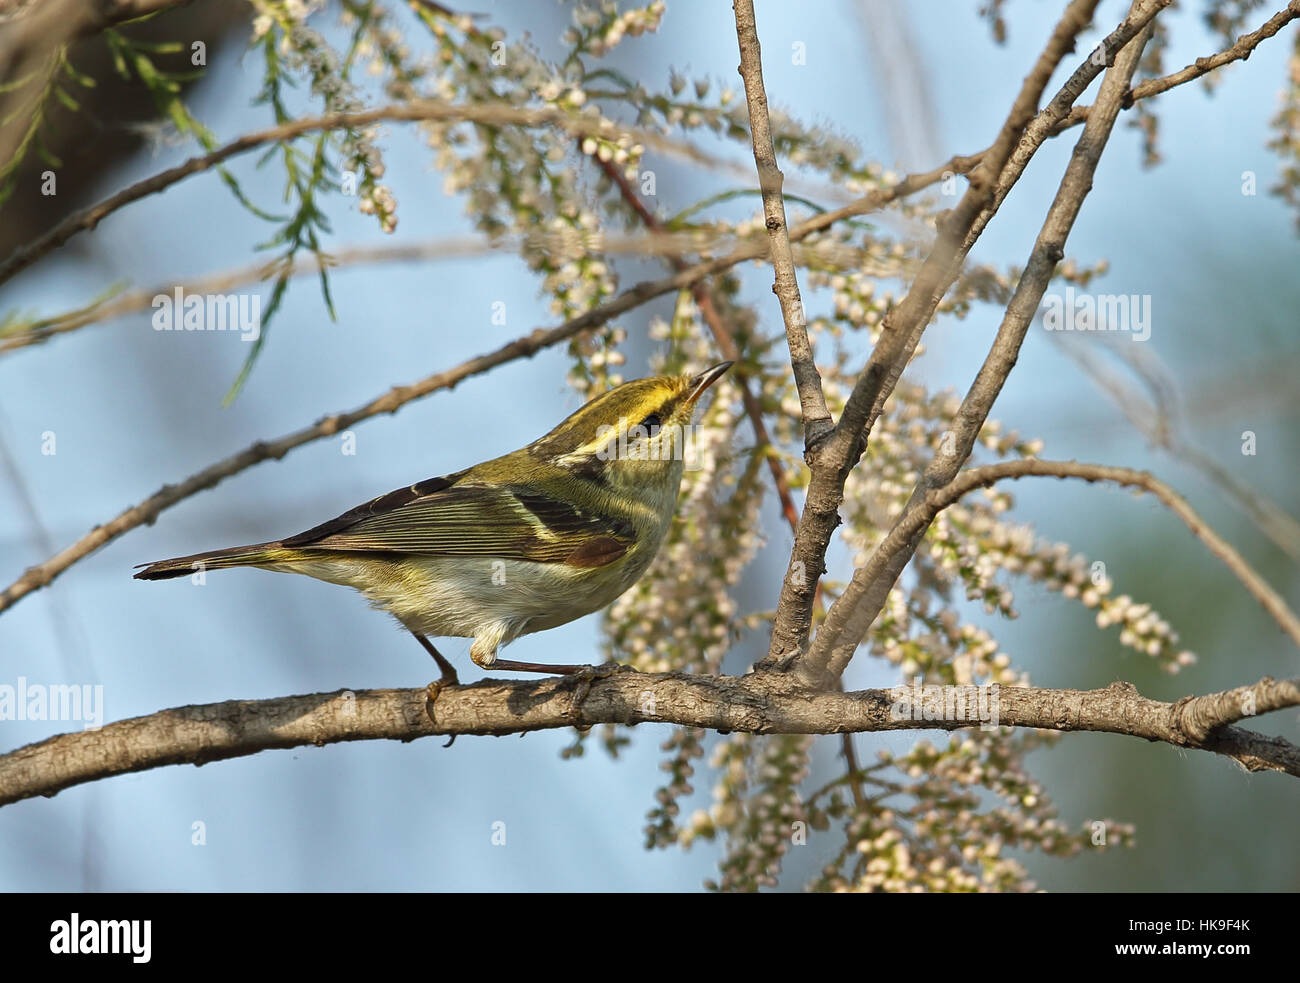 Pallas's Warbler (Phylloscopus proregulus) adult pearched on branch   Hebei, China       May 2016 Stock Photo